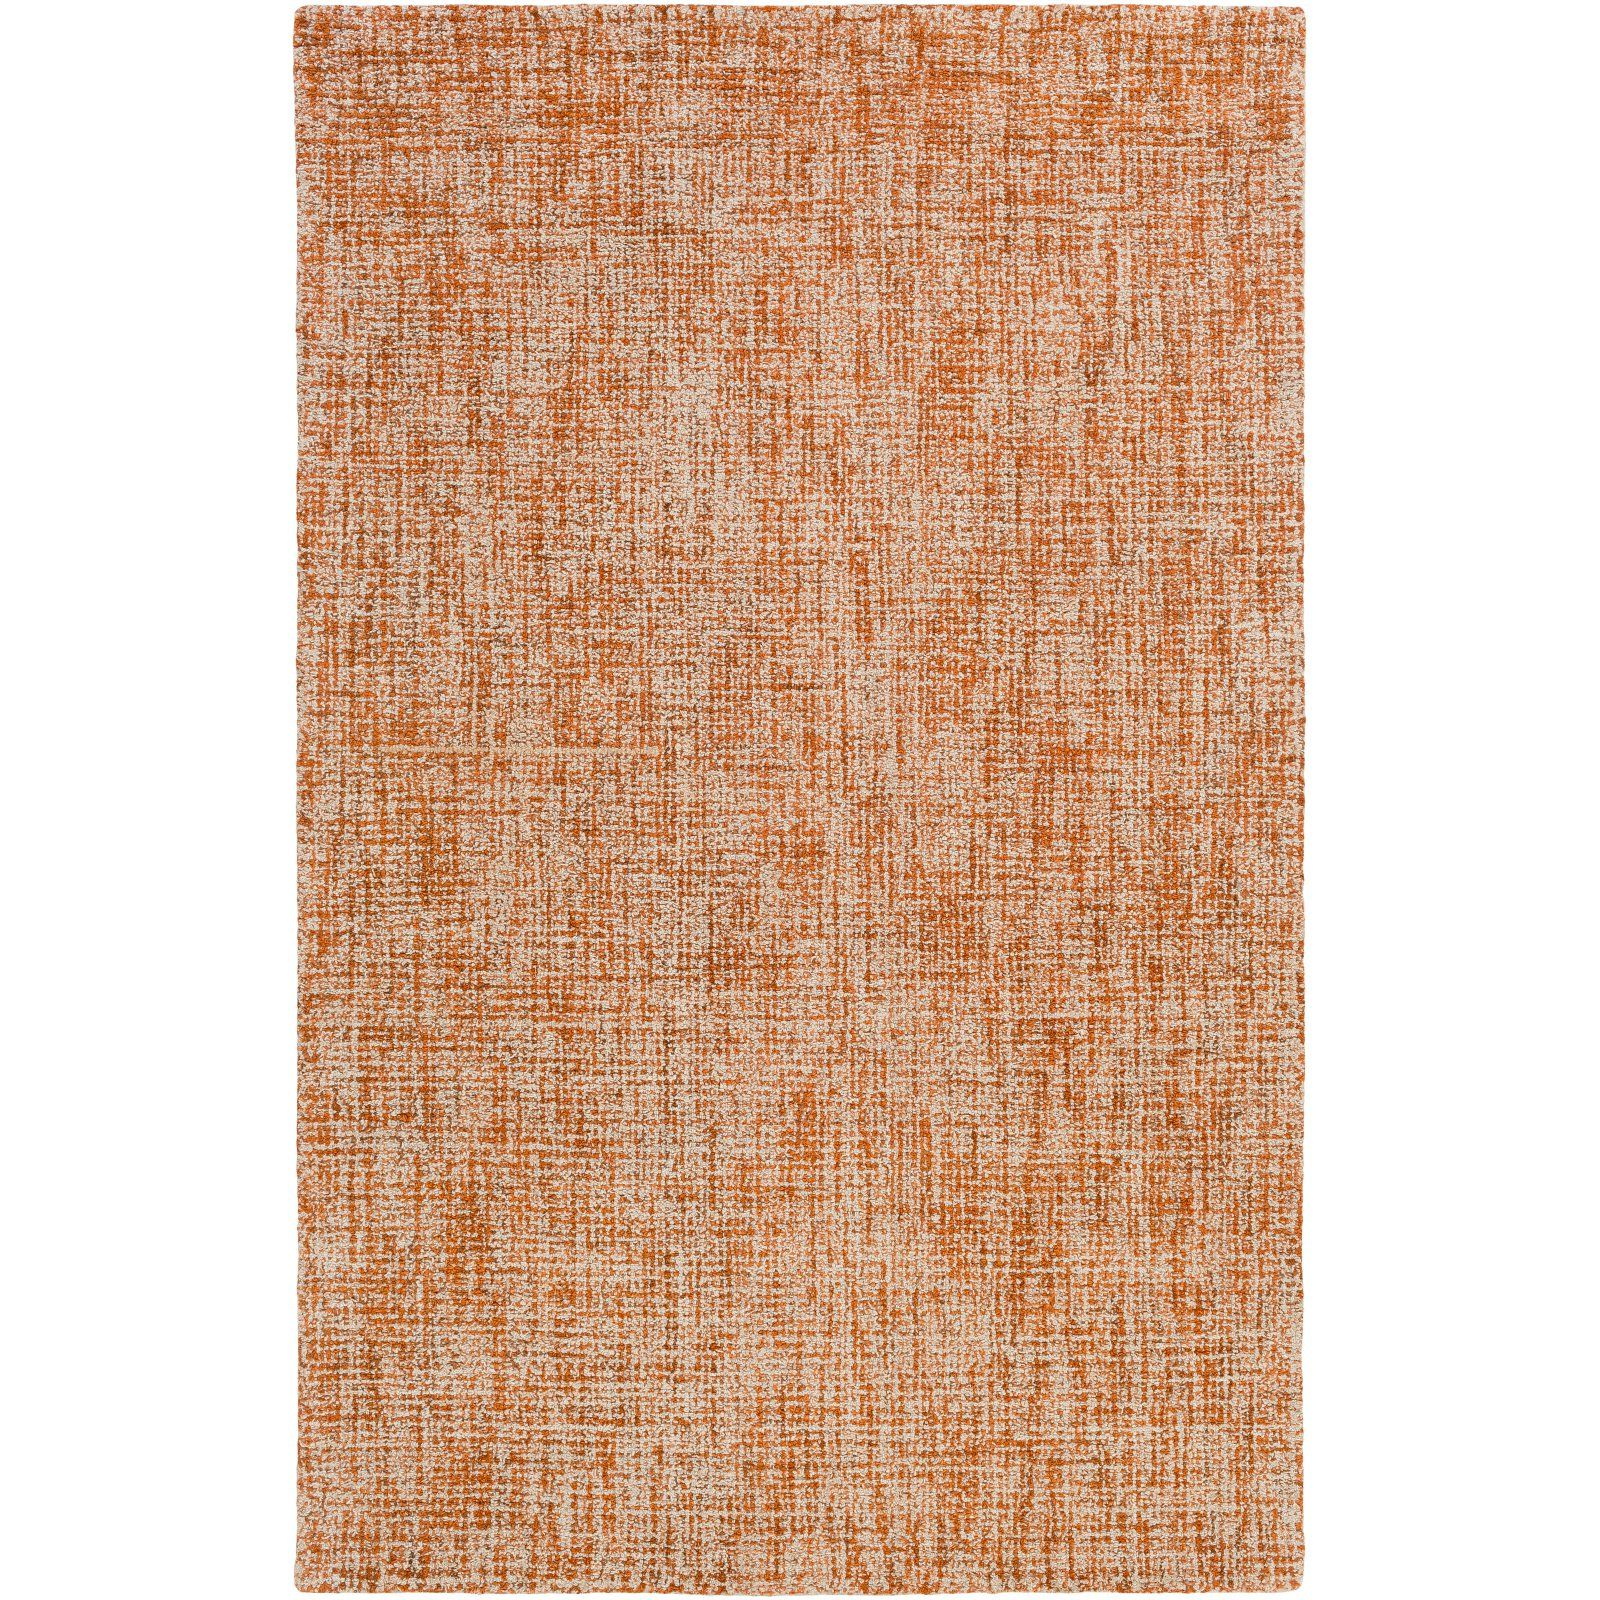 Burnt Orange Rust Wool Area Rug The Basics Collection Bring A